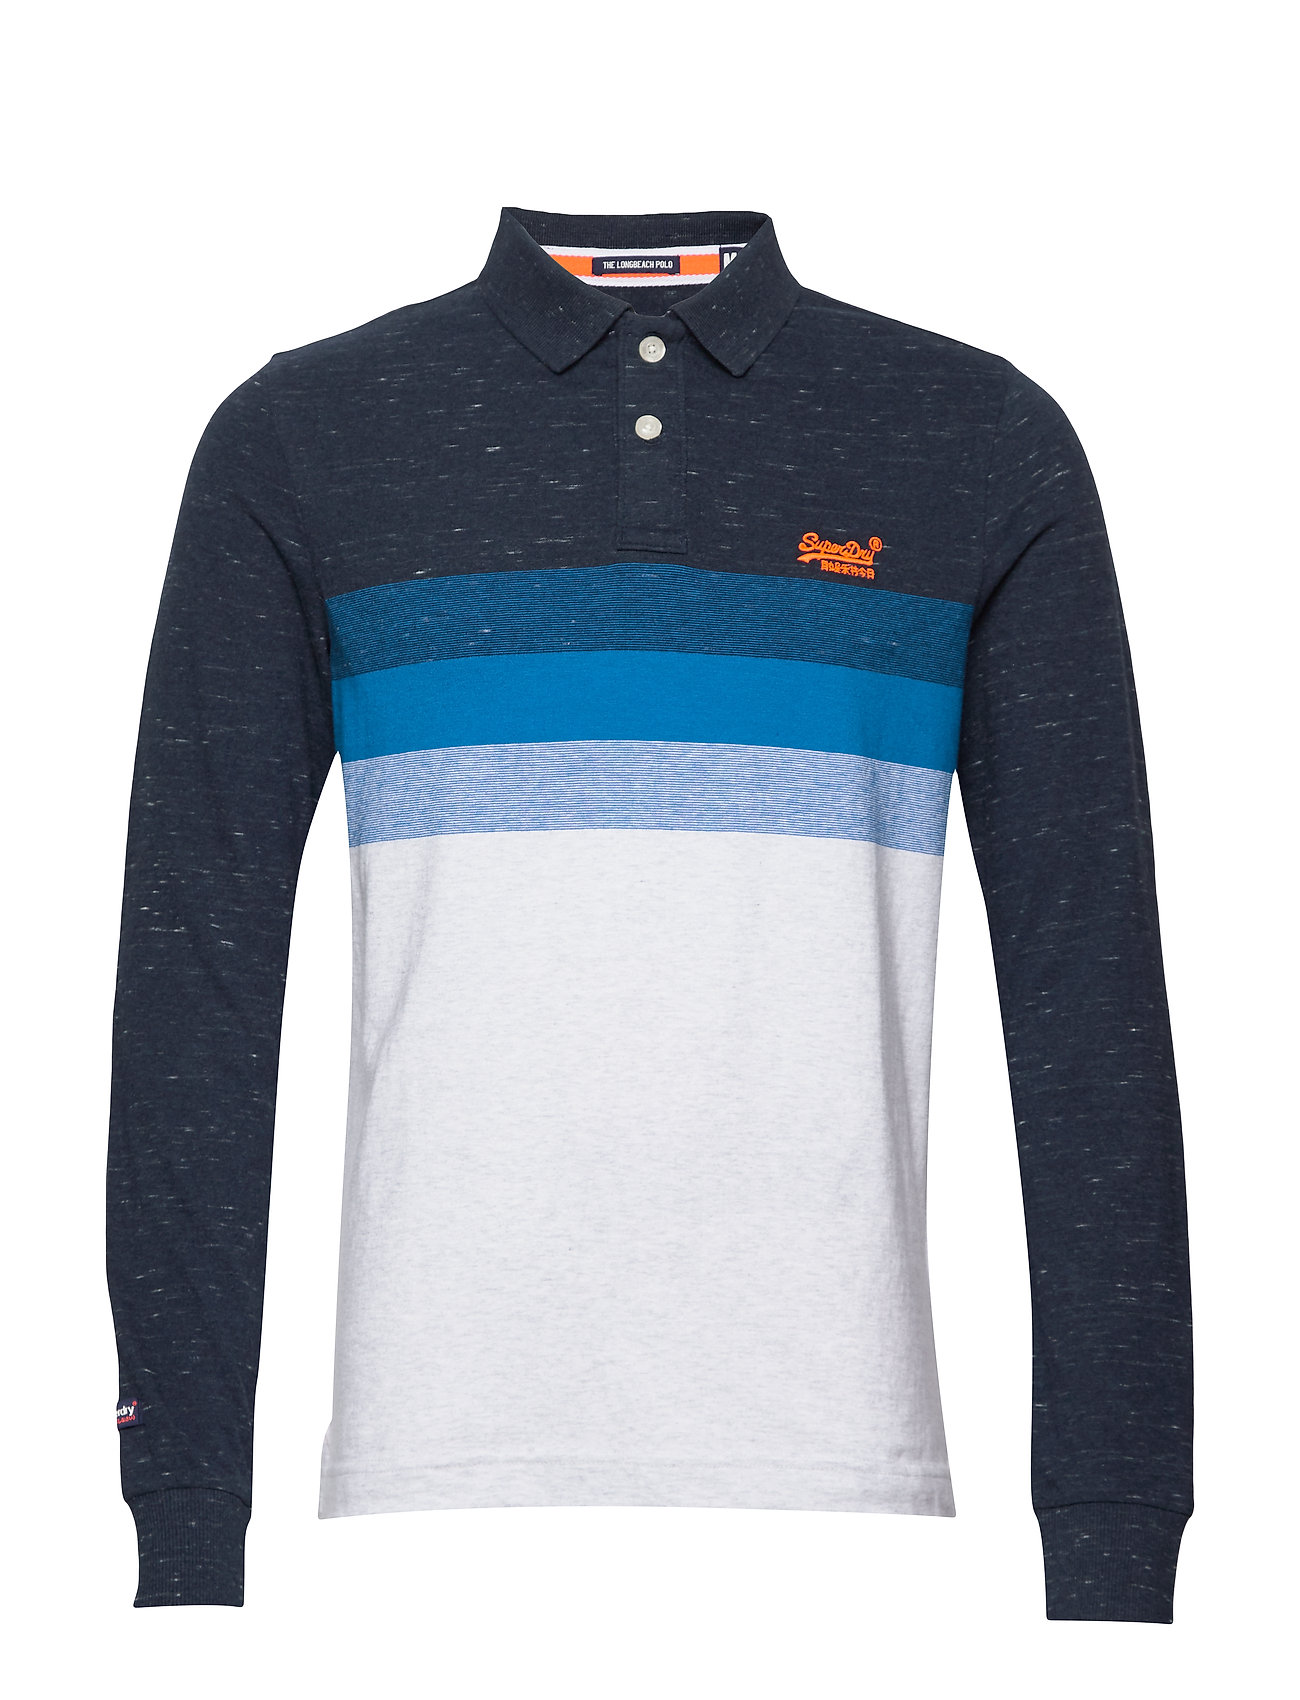 Superdry CLASSIC L/S LONG BEACH POLO - NAVY GRIT